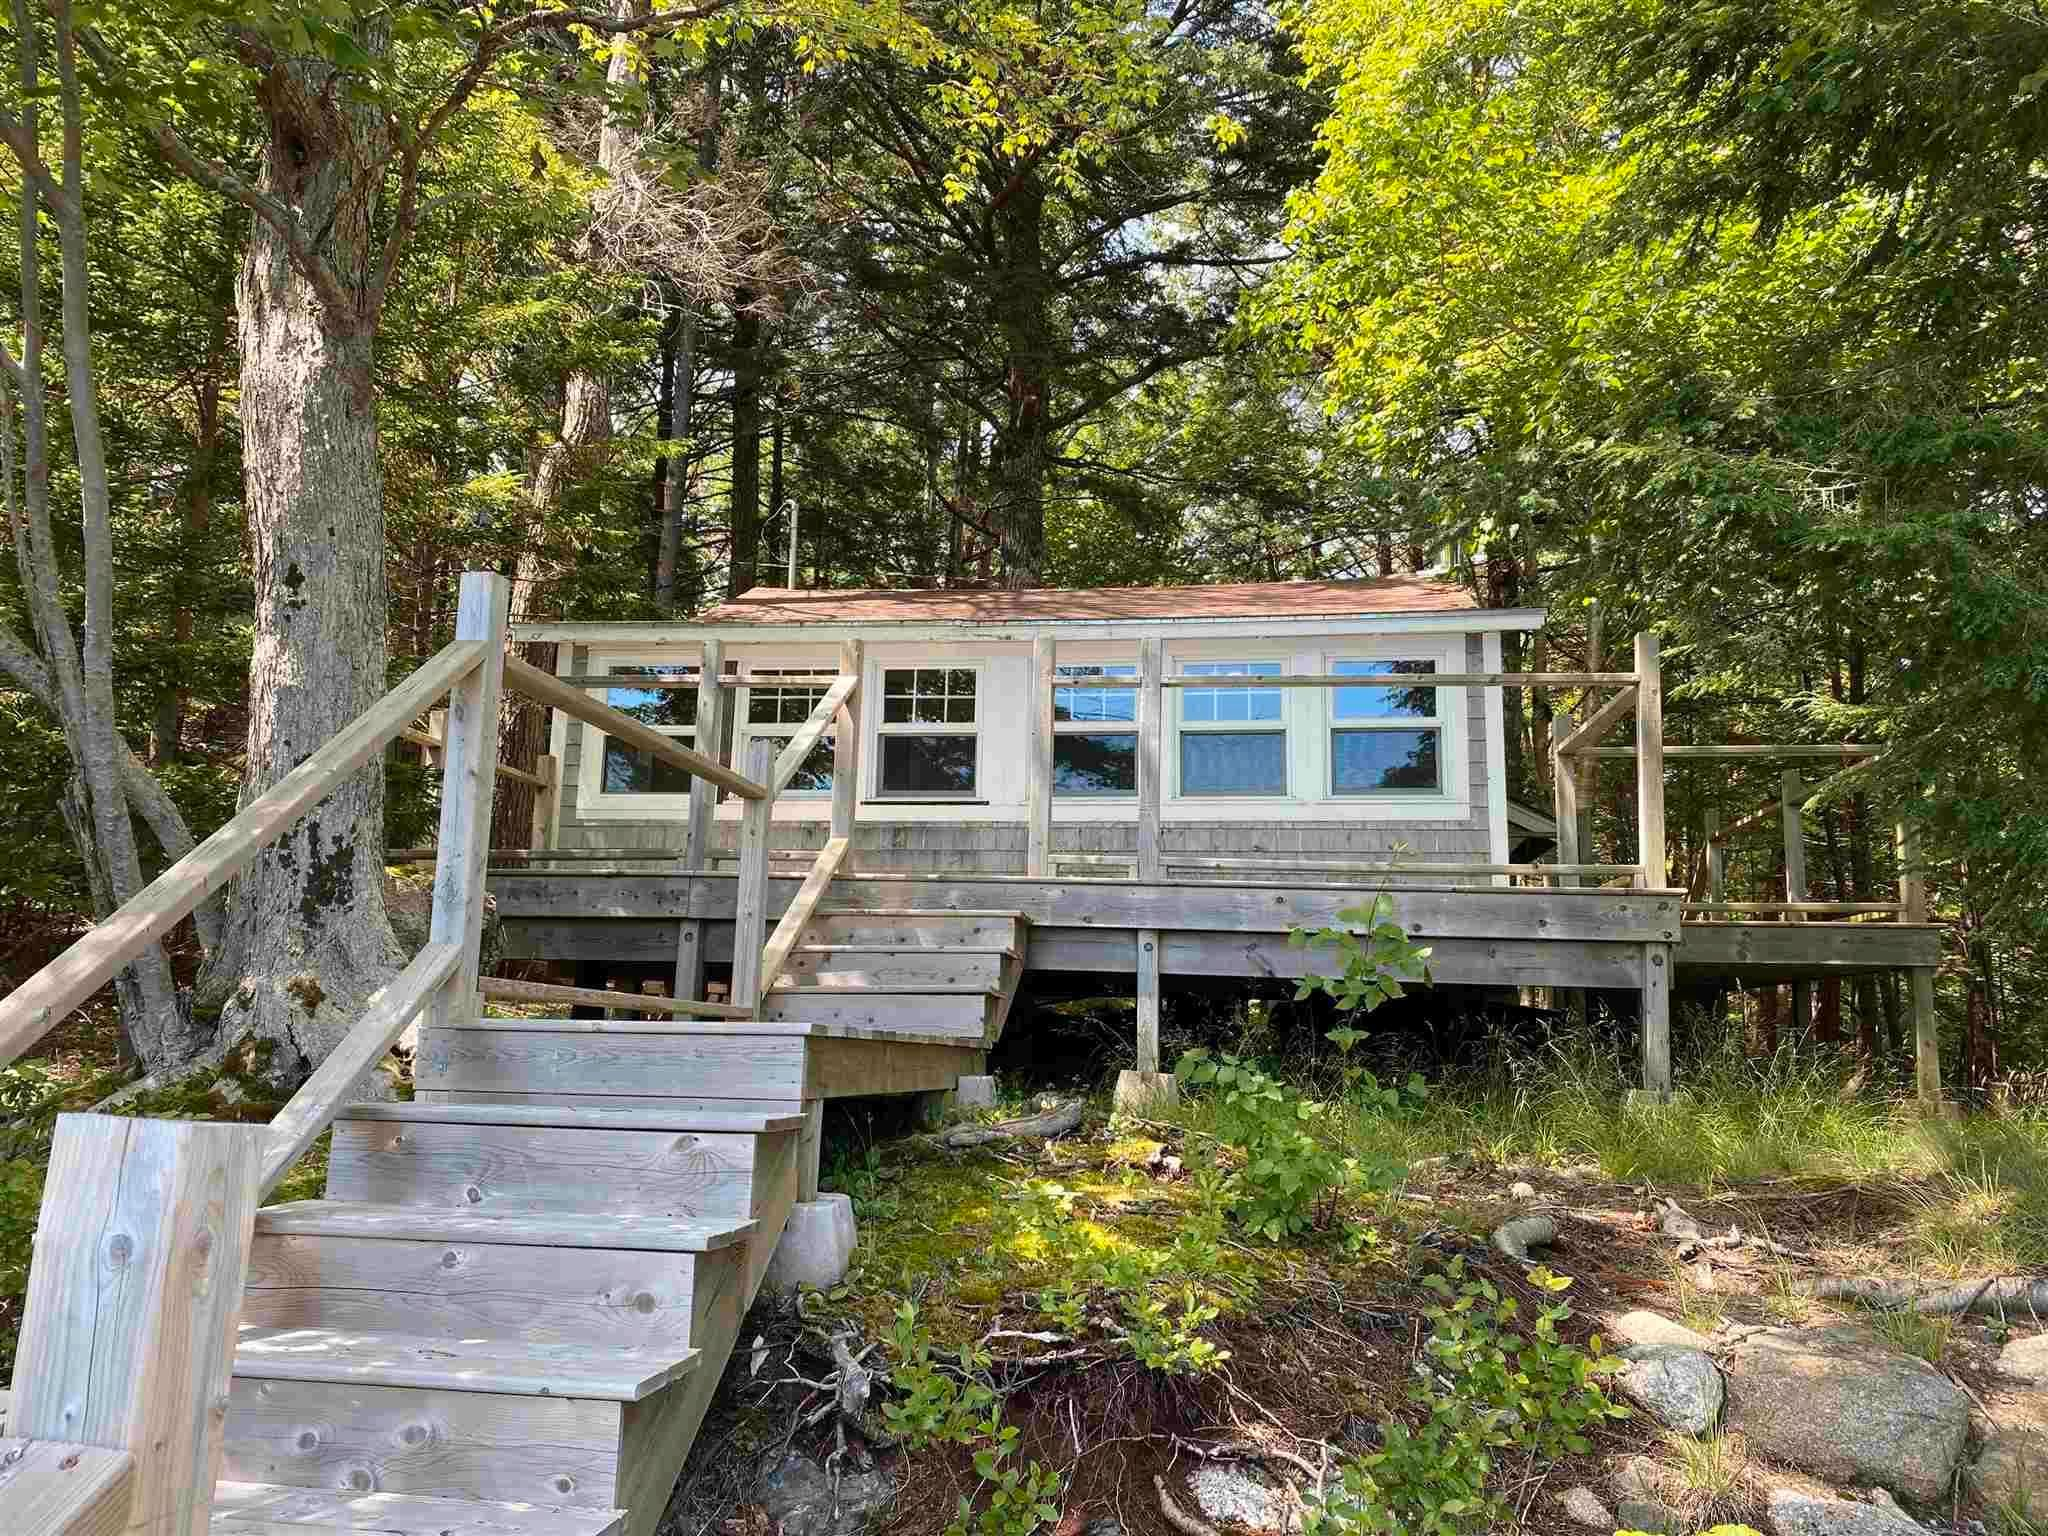 Main Photo: 665 South Range Cross Road in South Range: 401-Digby County Residential for sale (Annapolis Valley)  : MLS®# 202123570